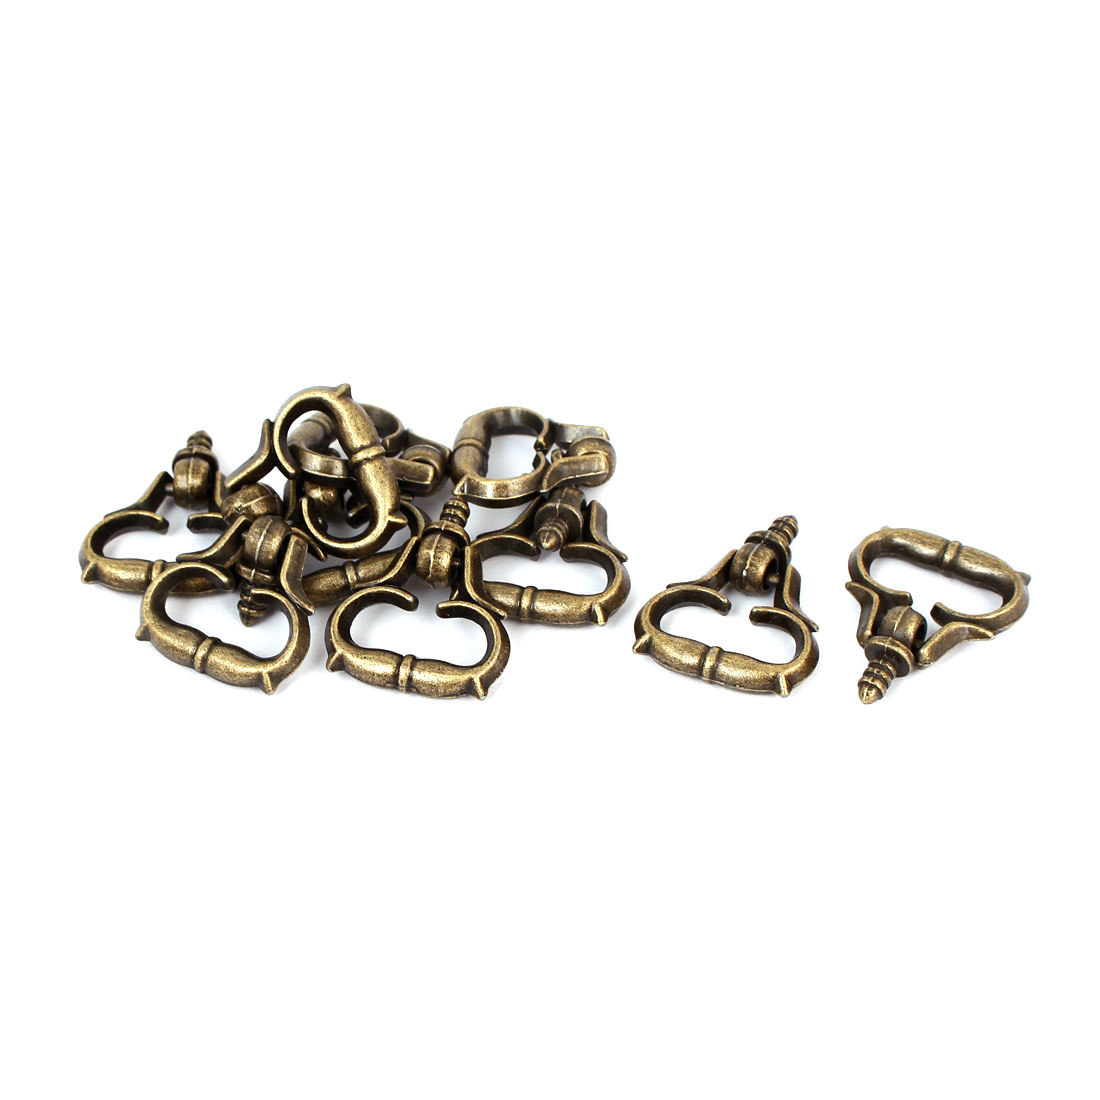 Jewelry Box Zinc Alloy Pull Handle Bronze Tone 23mm x 28mm x 5mm 10pcs